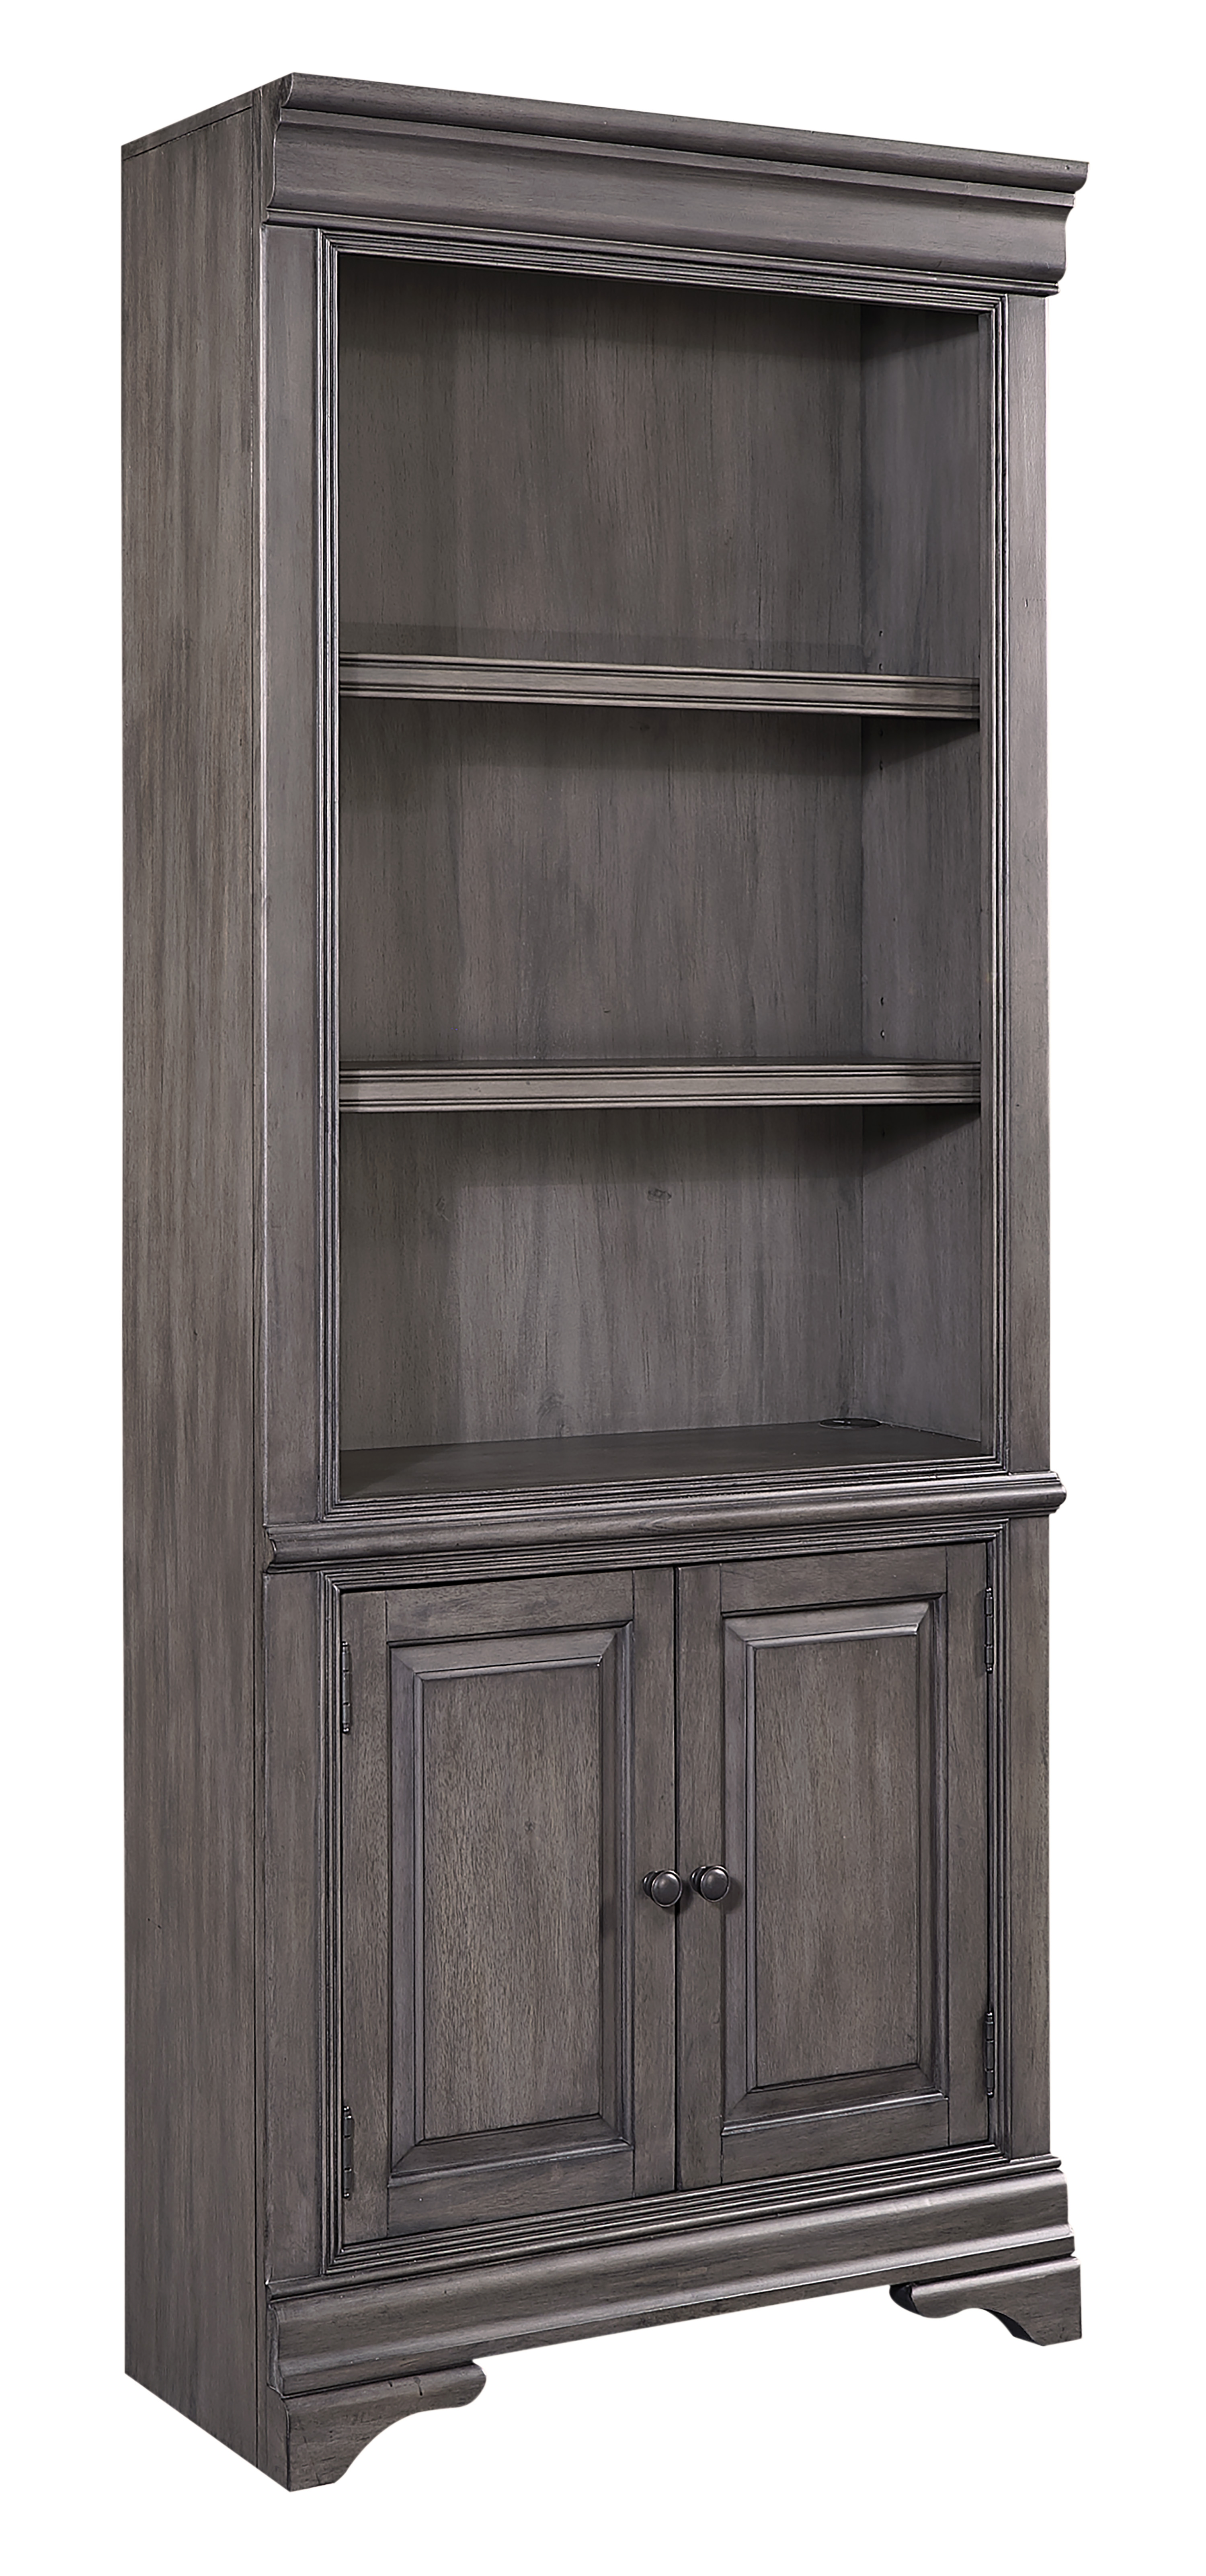 Sinclair Door Bookcase by Aspenhome at Stoney Creek Furniture